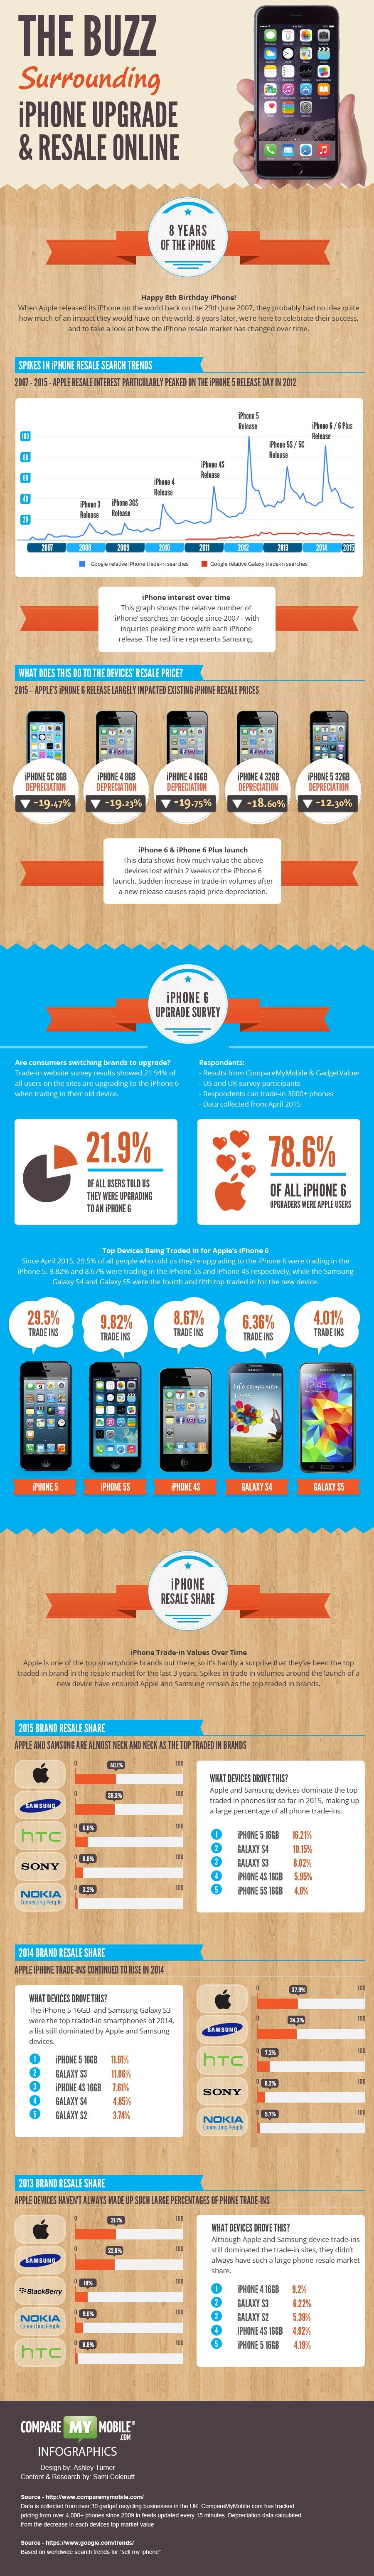 The buzz surrounding iPhones